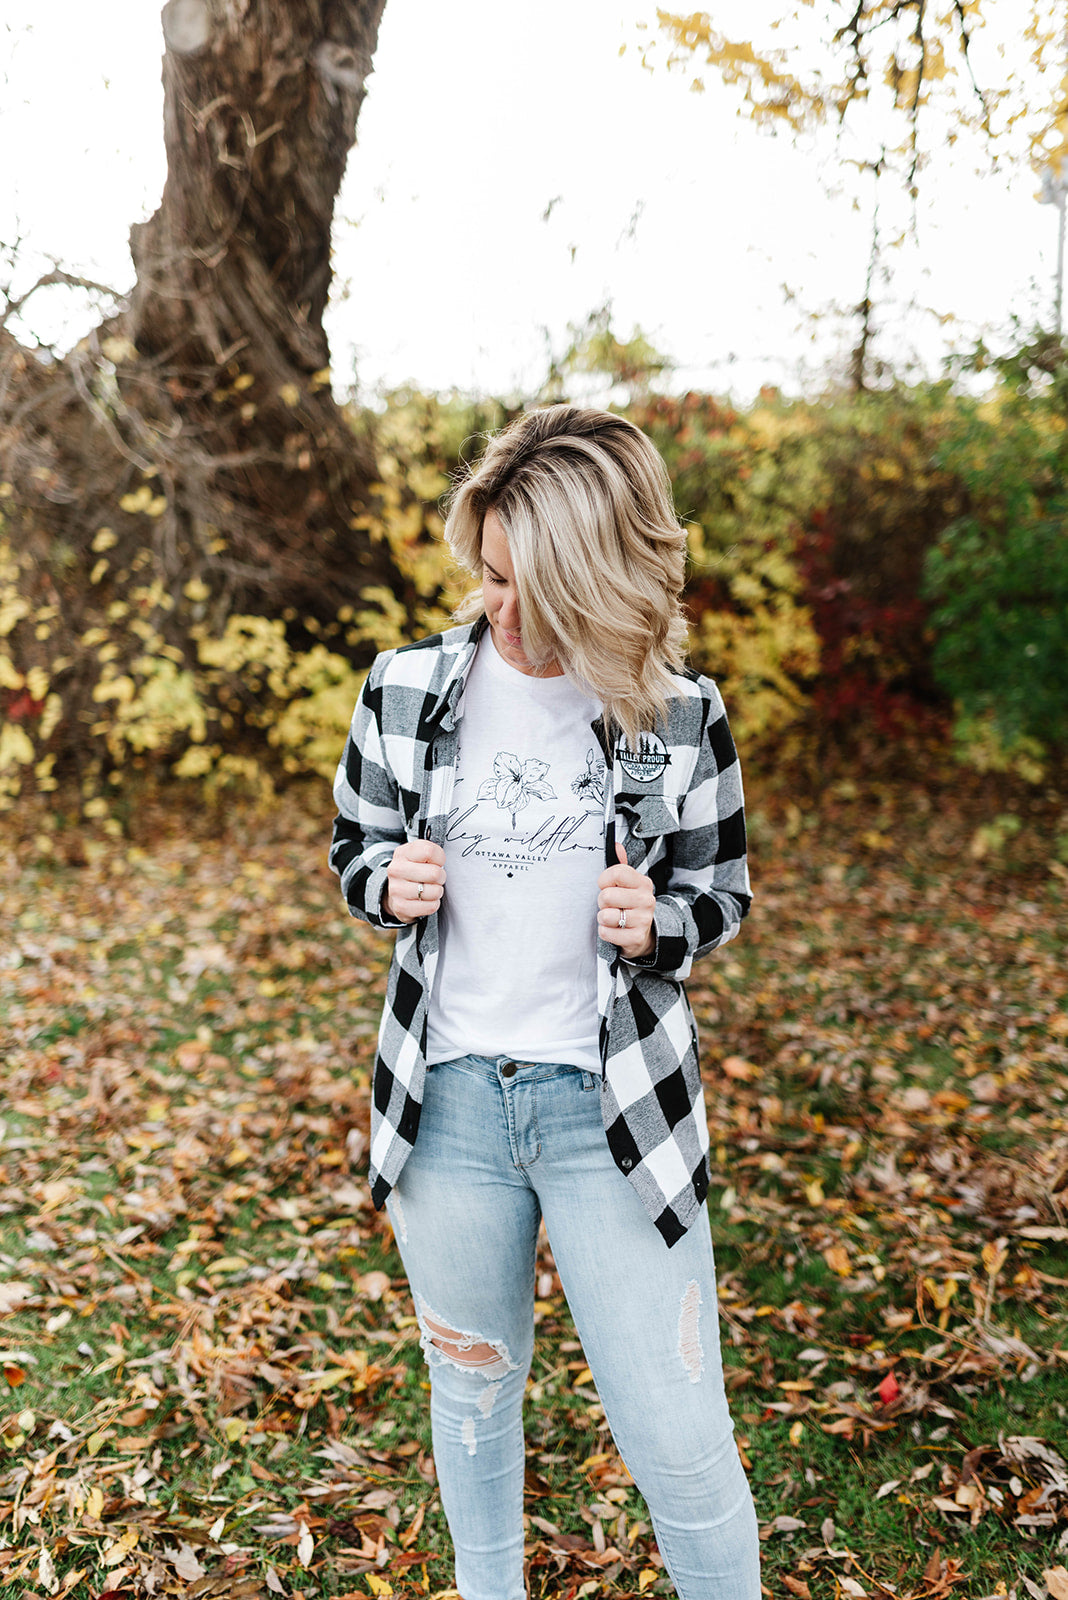 Valley Proud Women's Flannel Shirt - White & Black